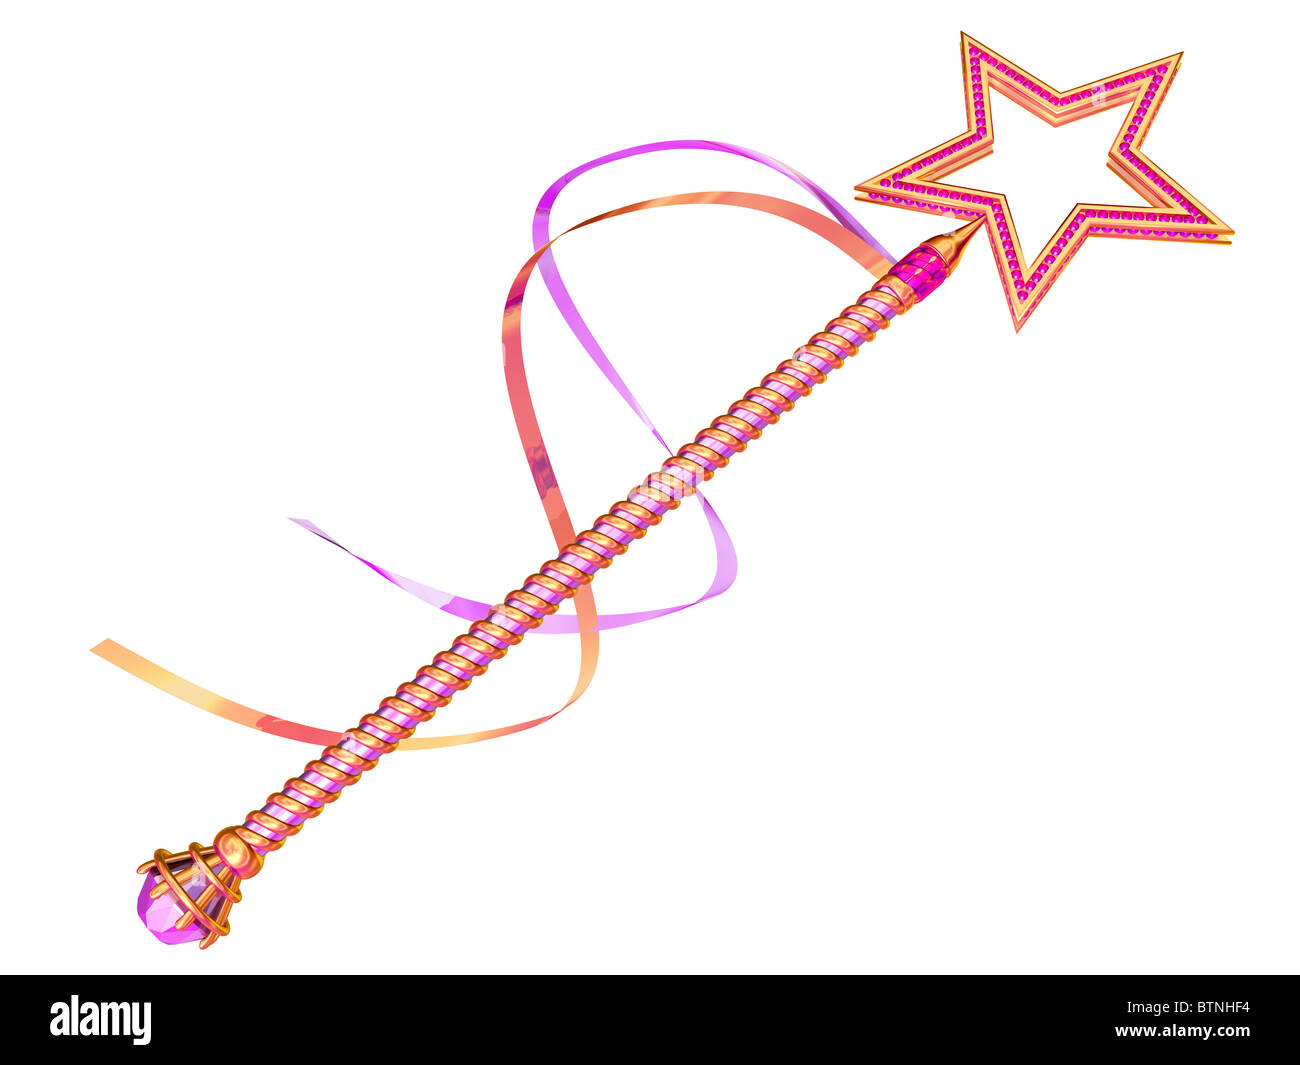 Isolated illustration of a pink and gold fairy wand - Stock Image